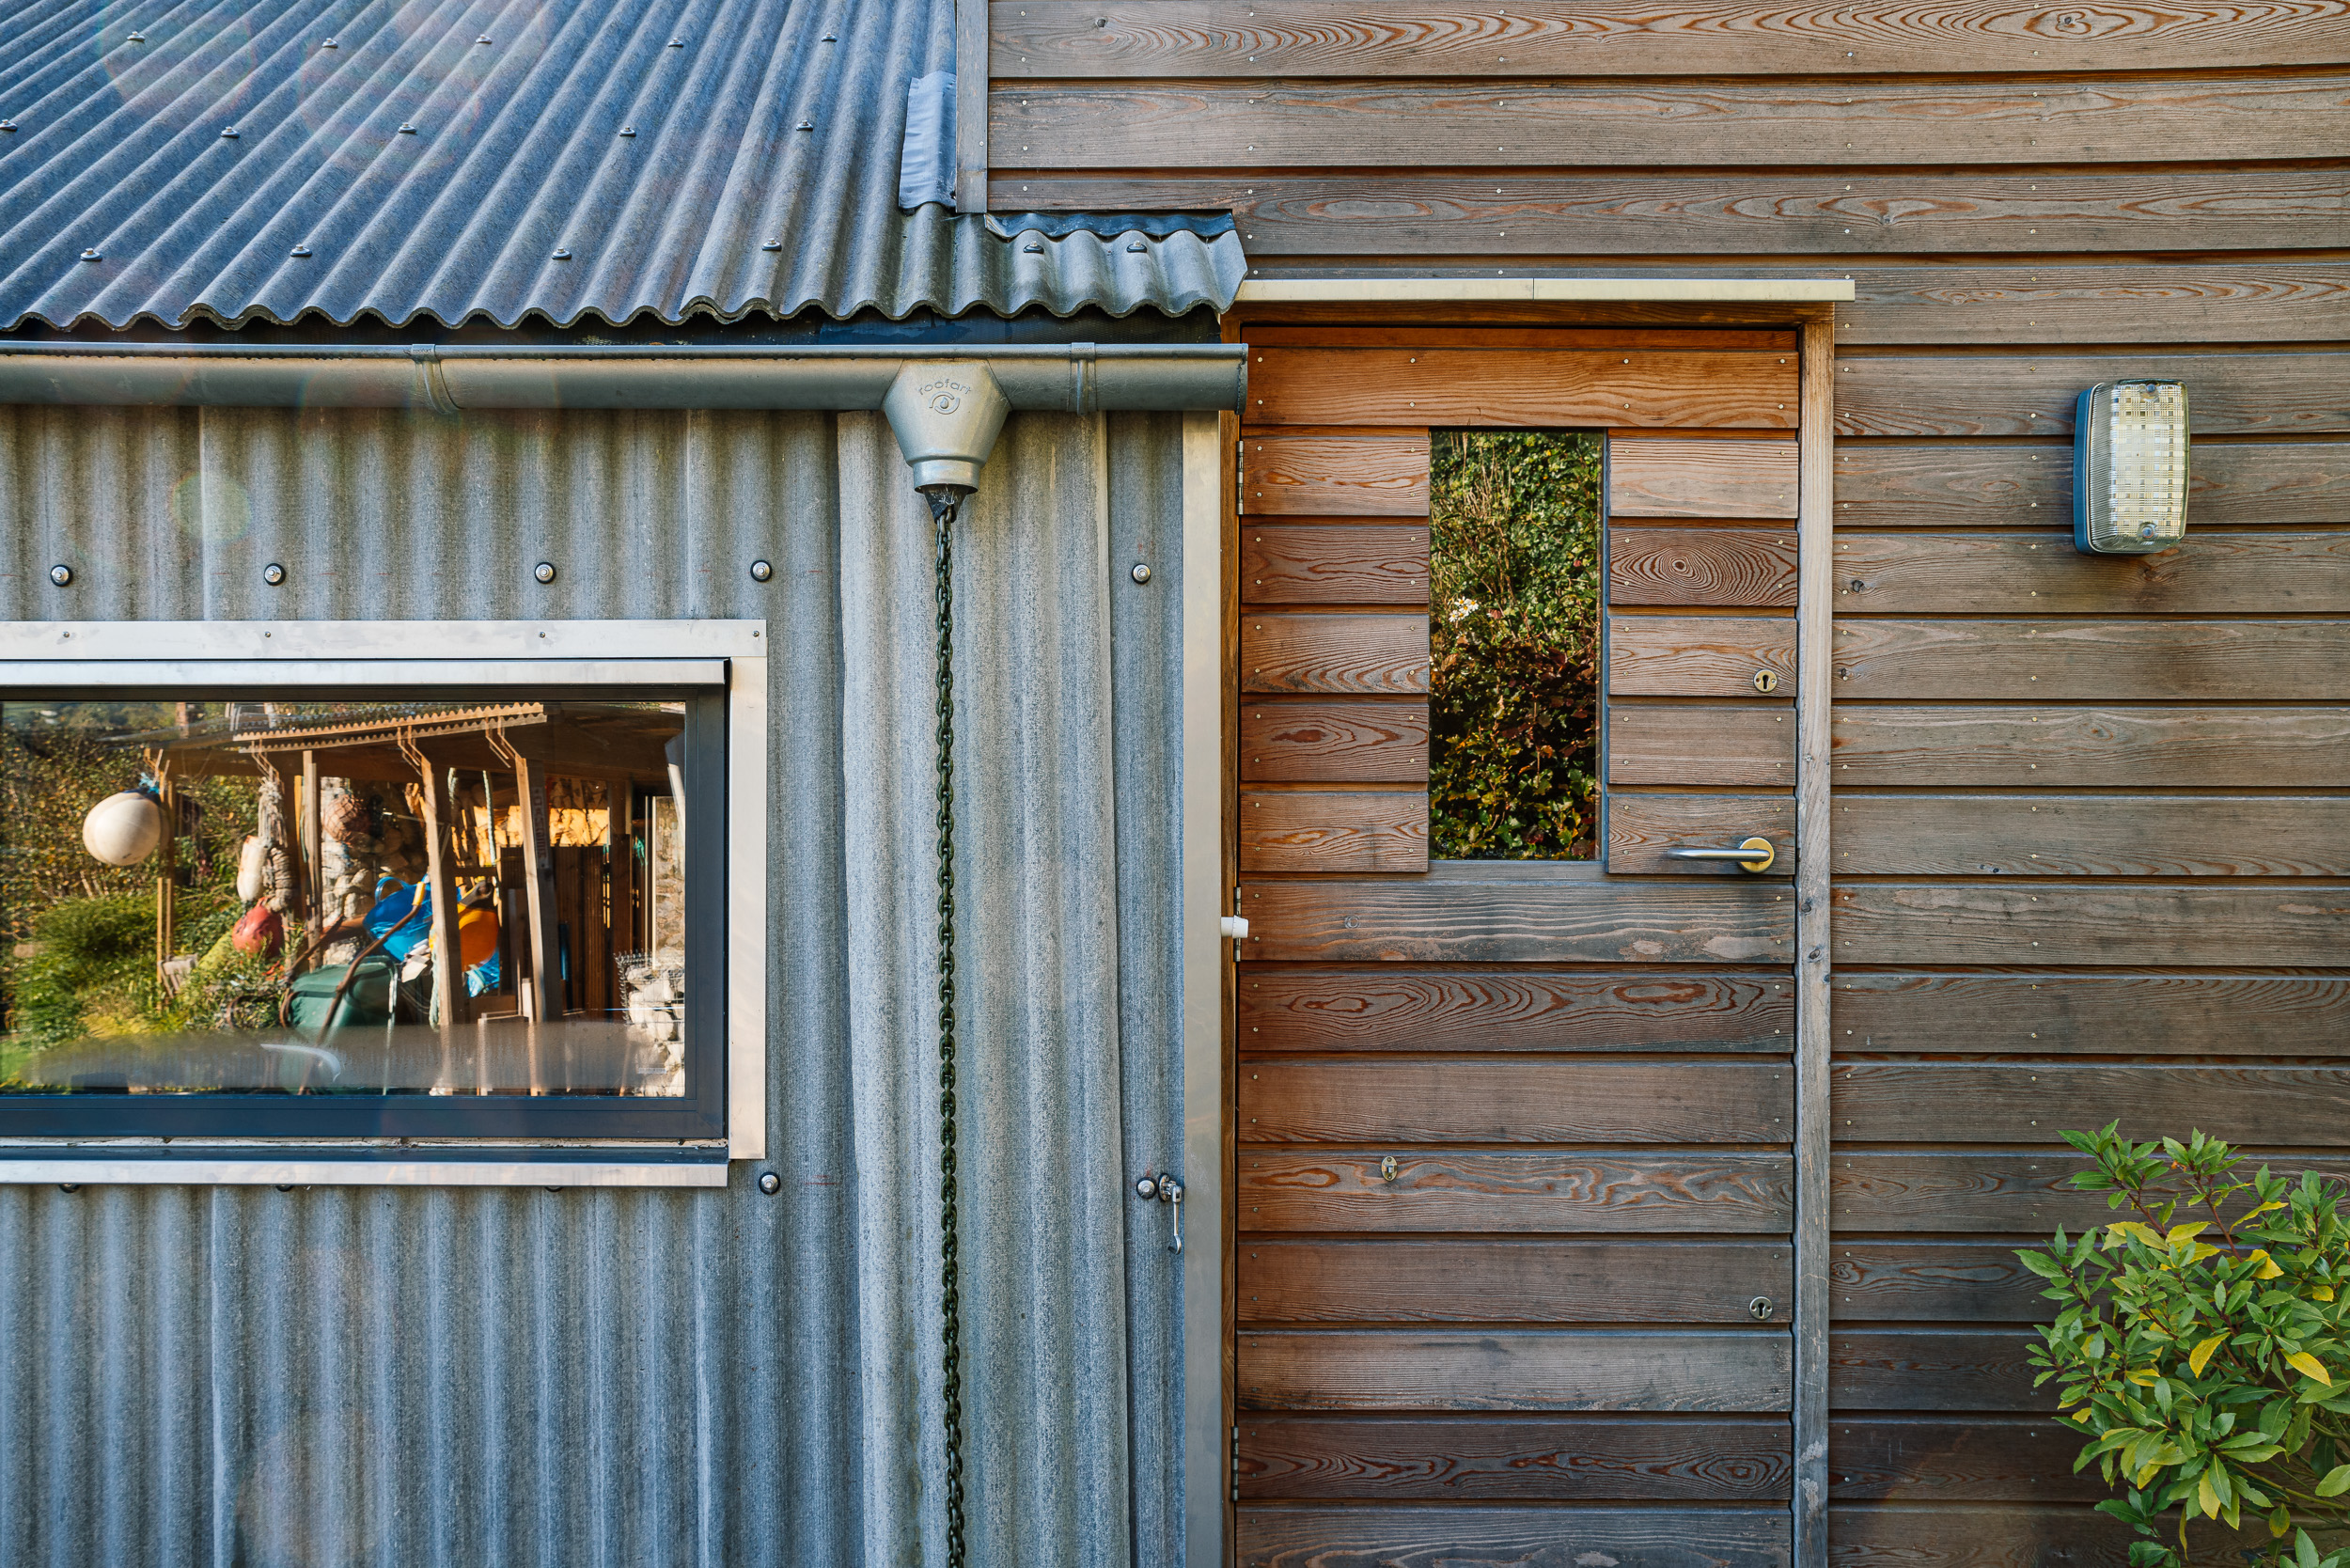 Garden door corrugated fibre cement wall and roof detail, rain chain